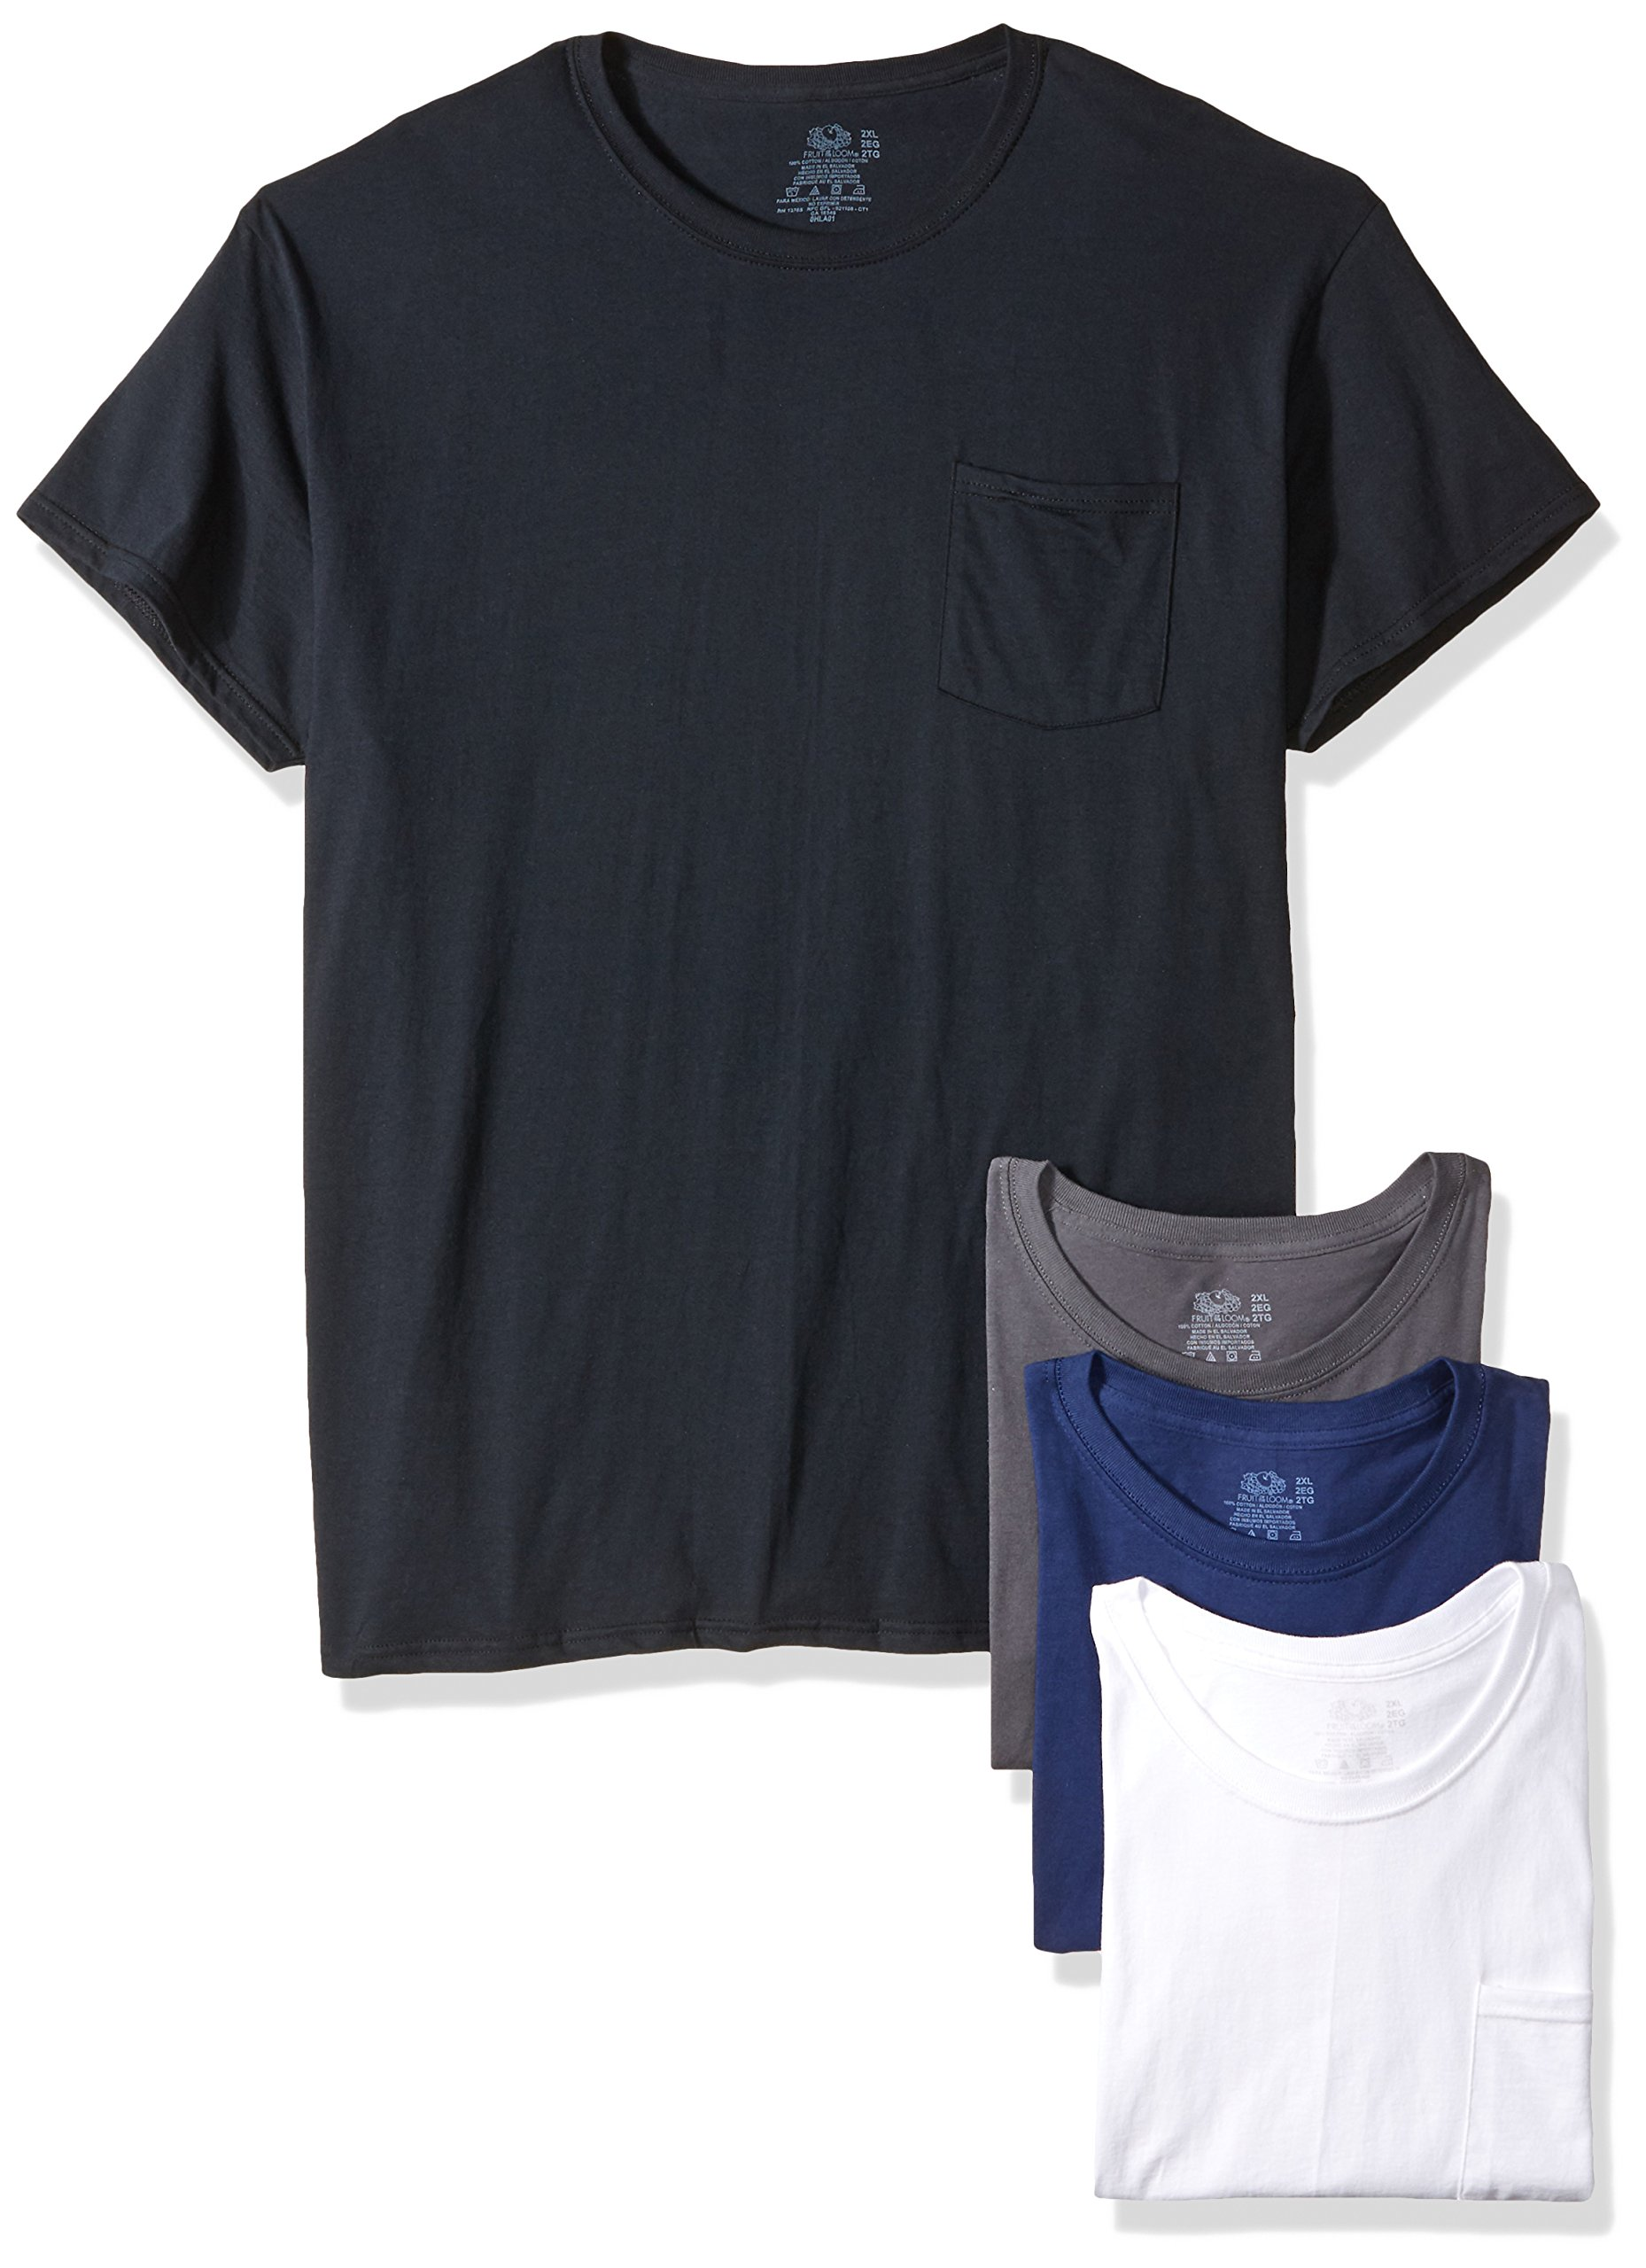 Fruit of the Loom Men's Pocket Crew Neck T-Shirt - XX-Large - Assorted Colors (Pack of 4)